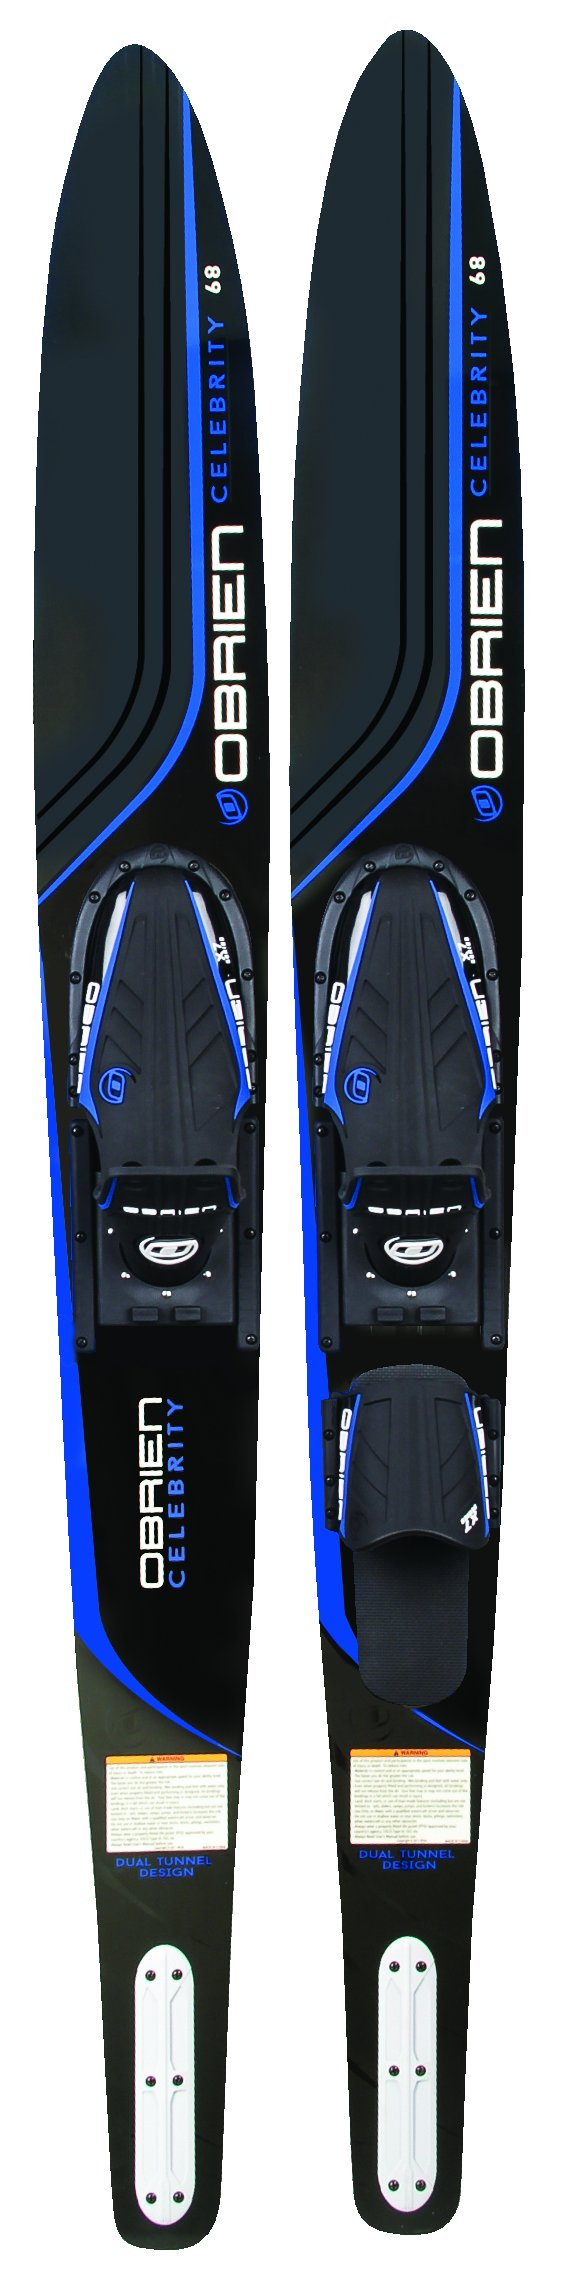 O'Brien Celebrity Combo Water Skis with x-7 Bindings, Blue, 68''